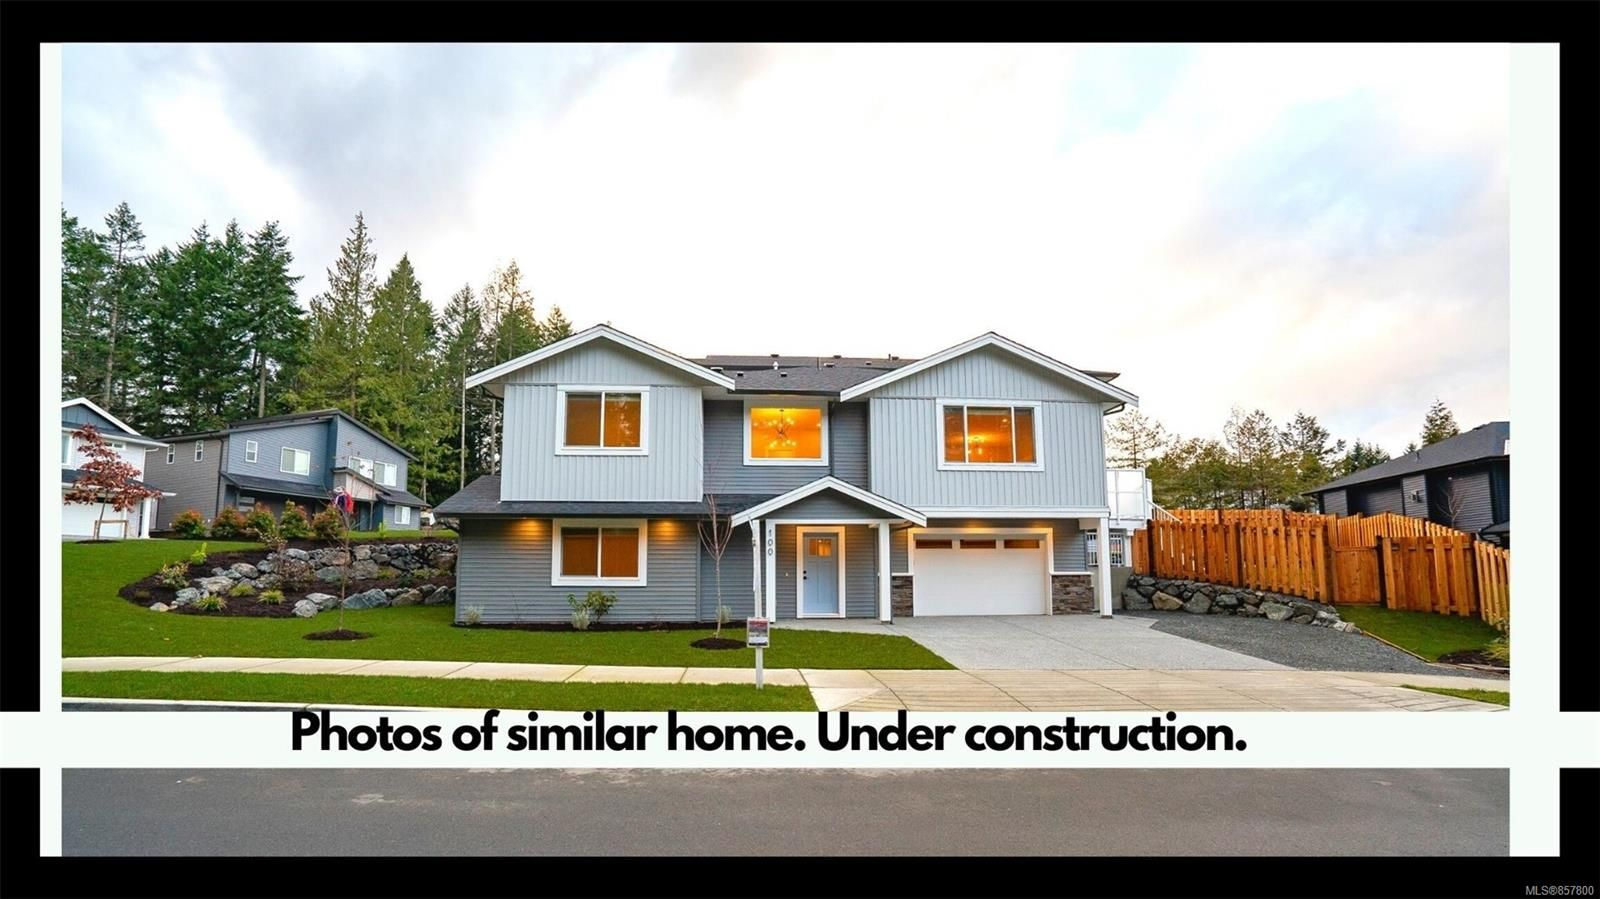 Main Photo: 141 Evelyn Cres in : Na Chase River Half Duplex for sale (Nanaimo)  : MLS®# 857800